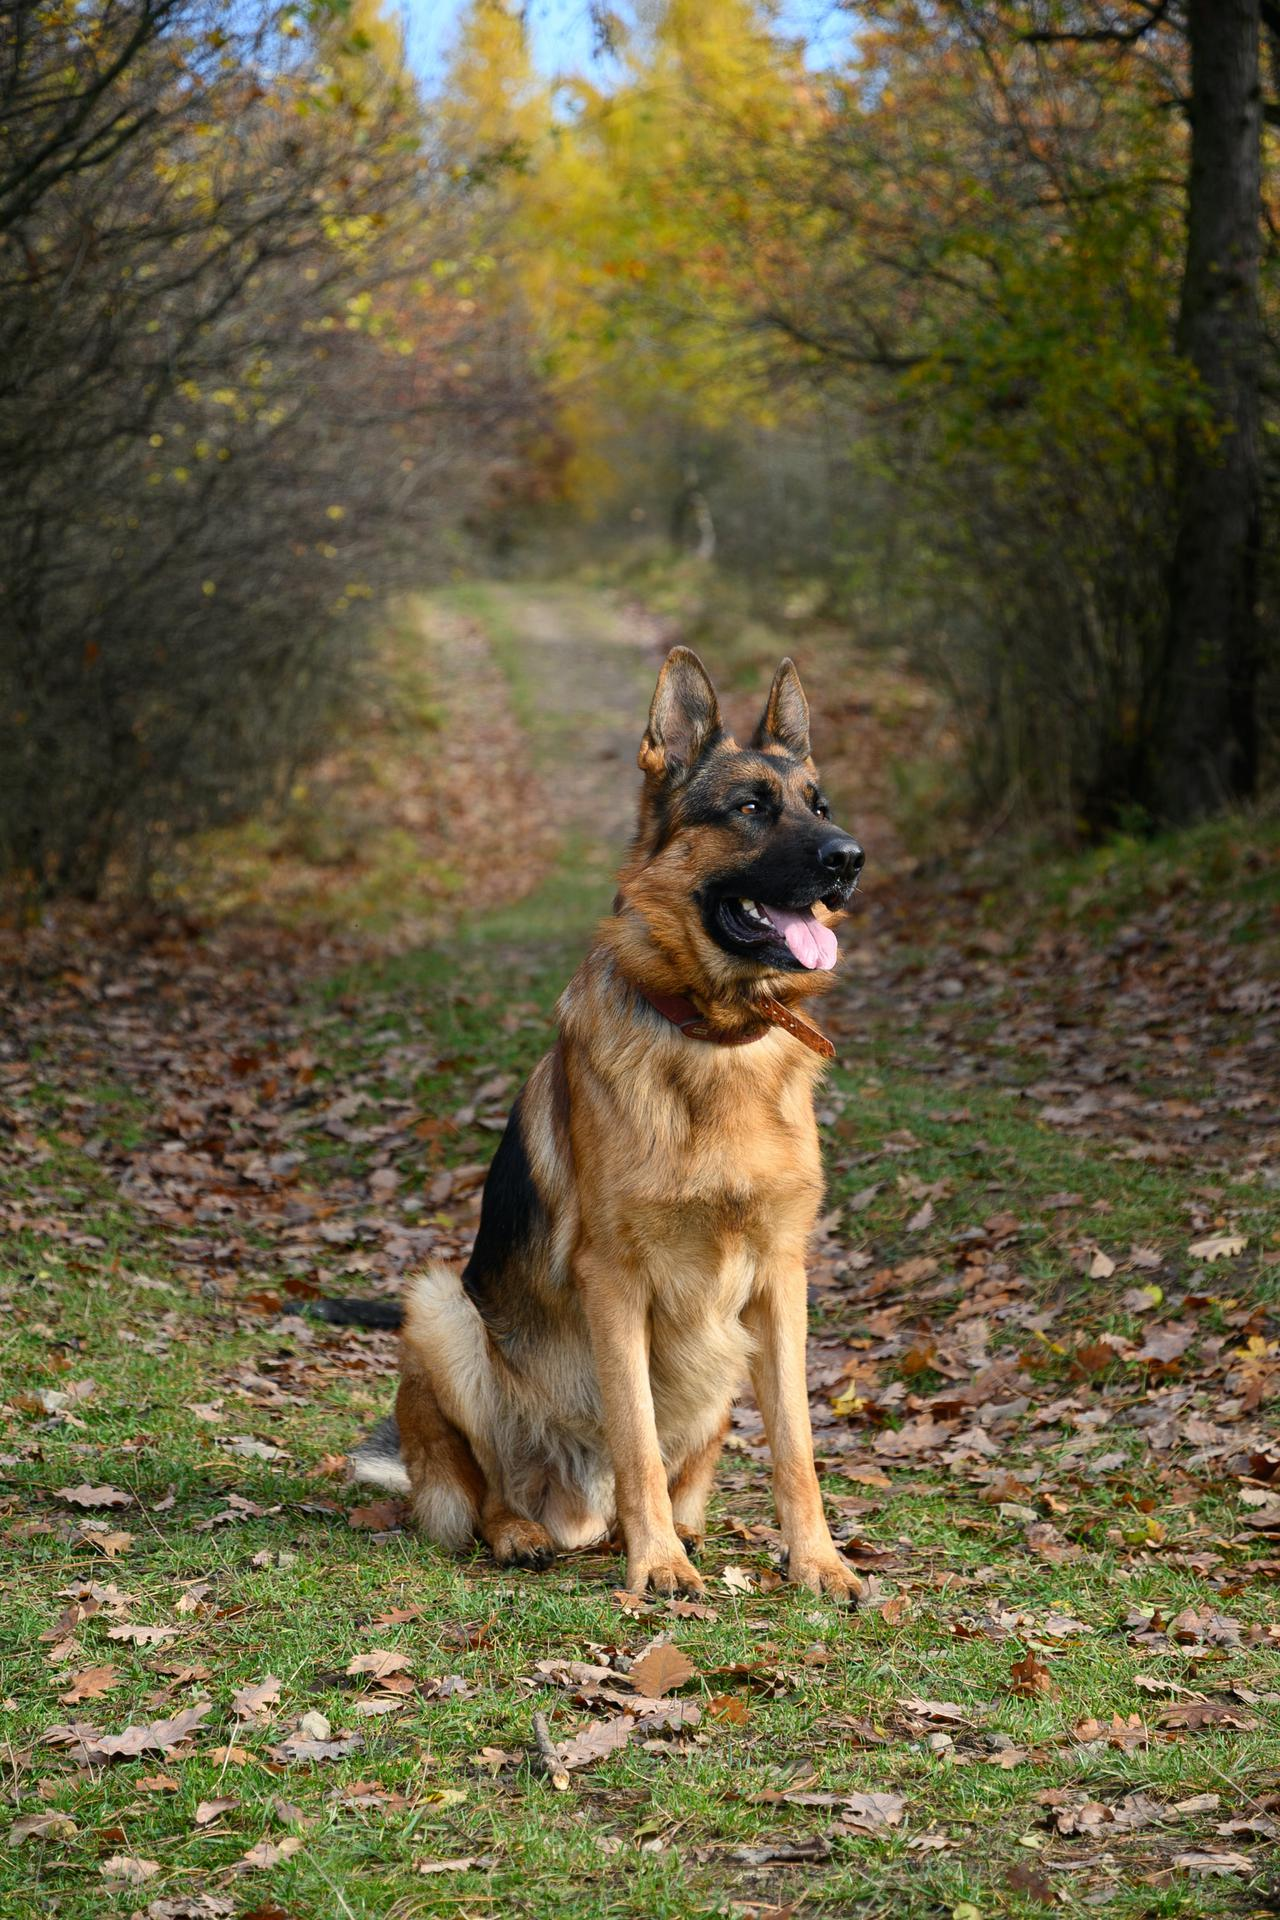 Why use pipeline leak detection dogs?